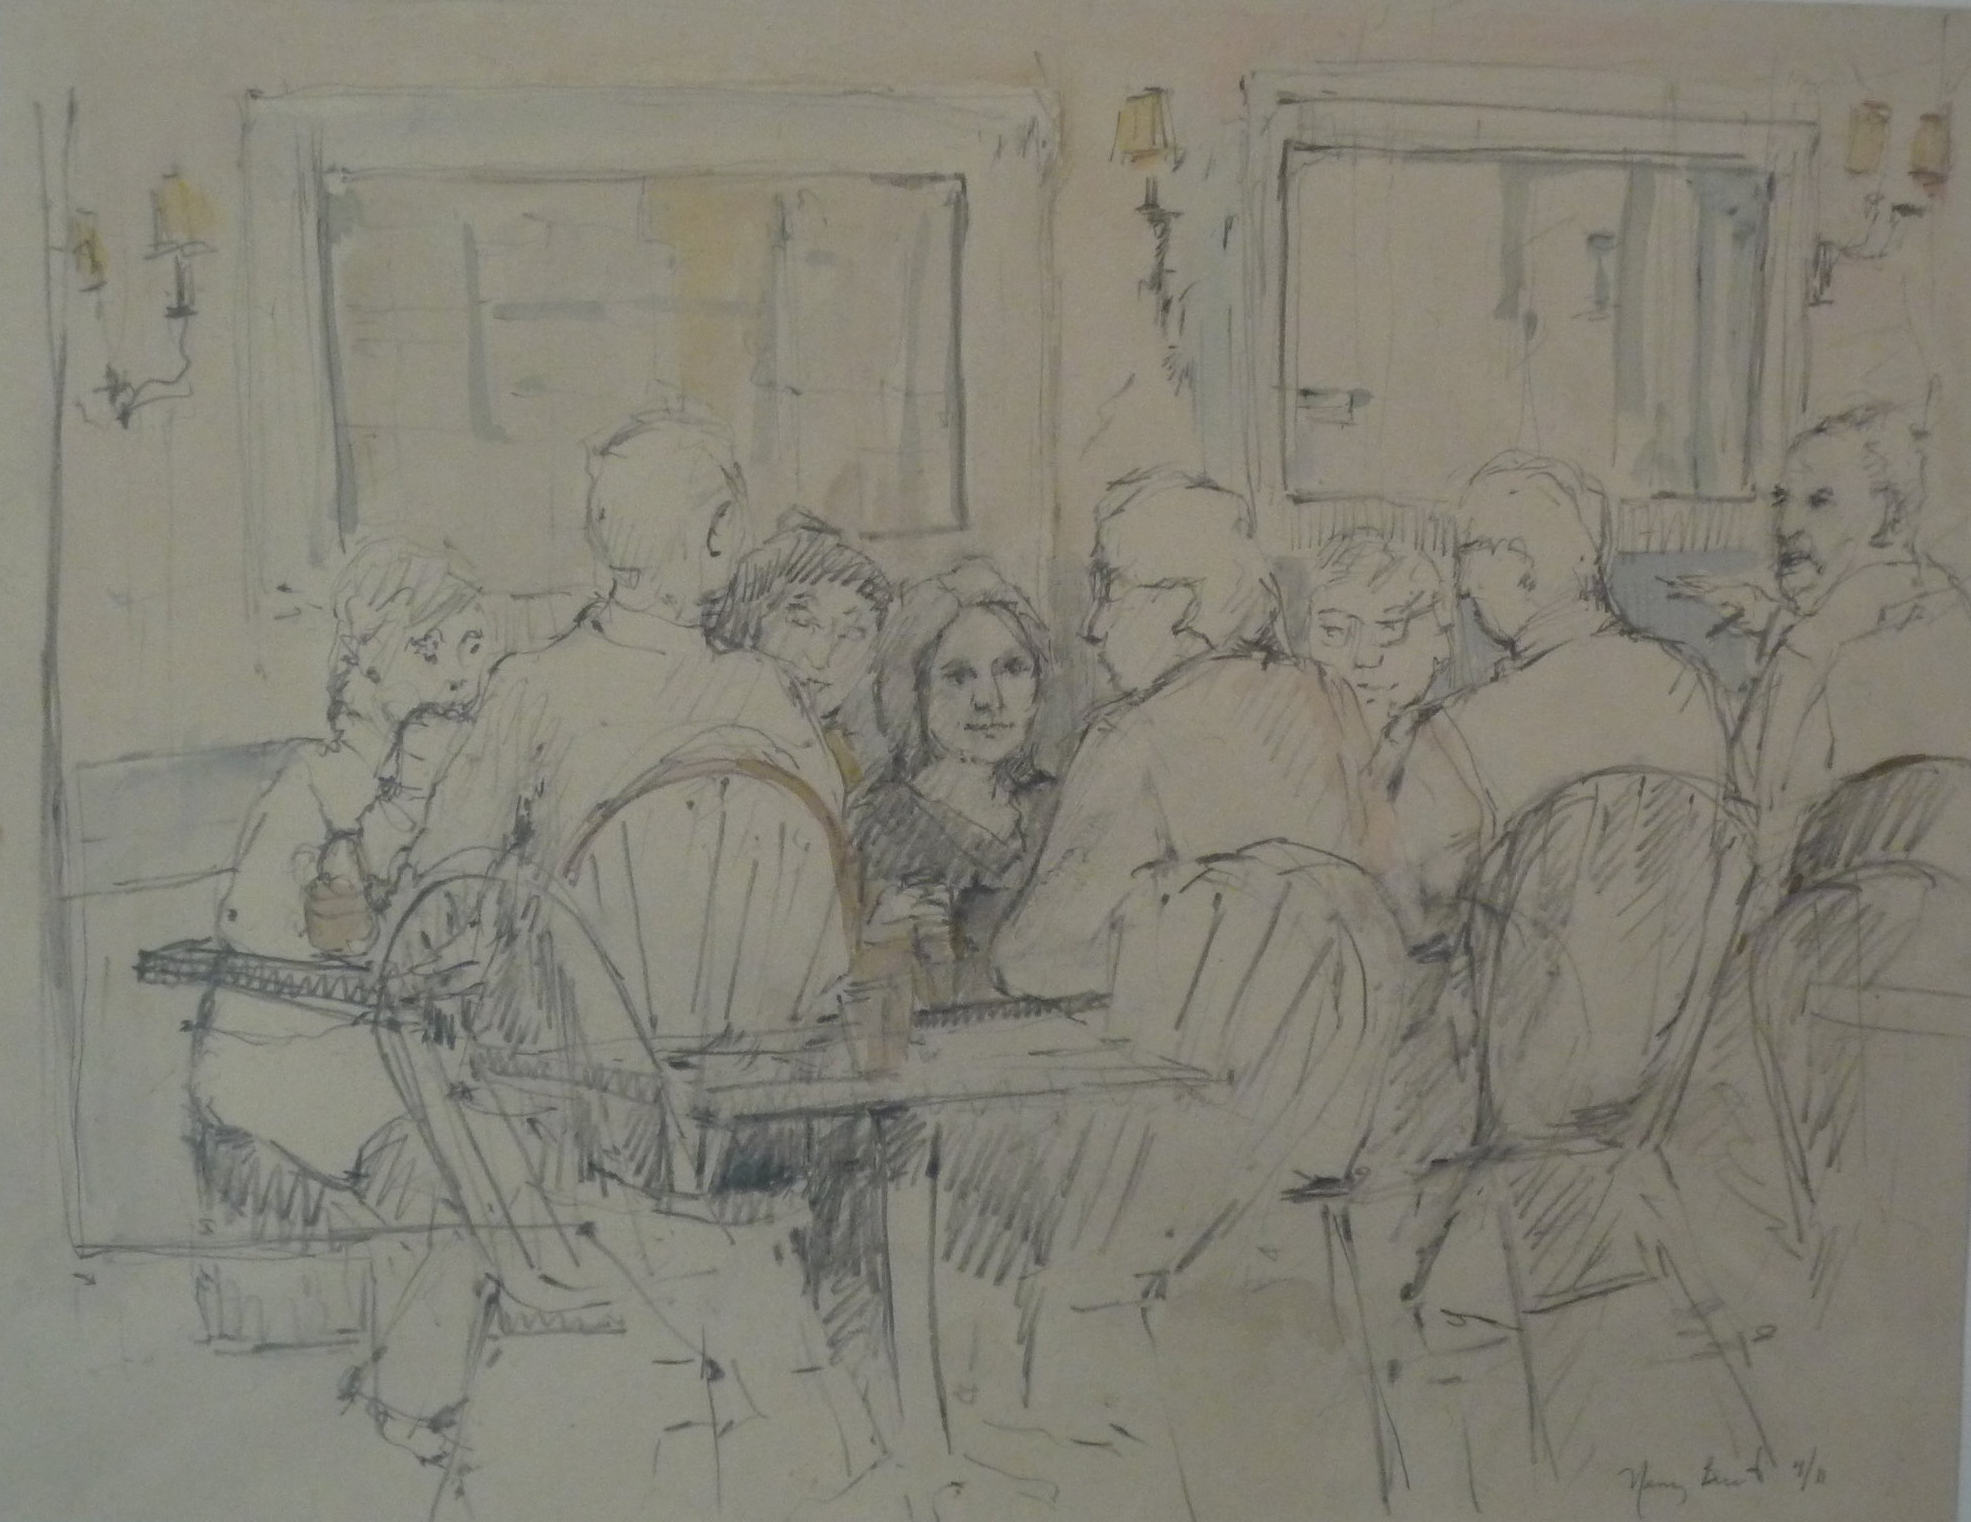 Retirees Lunch at the Tavern  Pencil and Watercolor